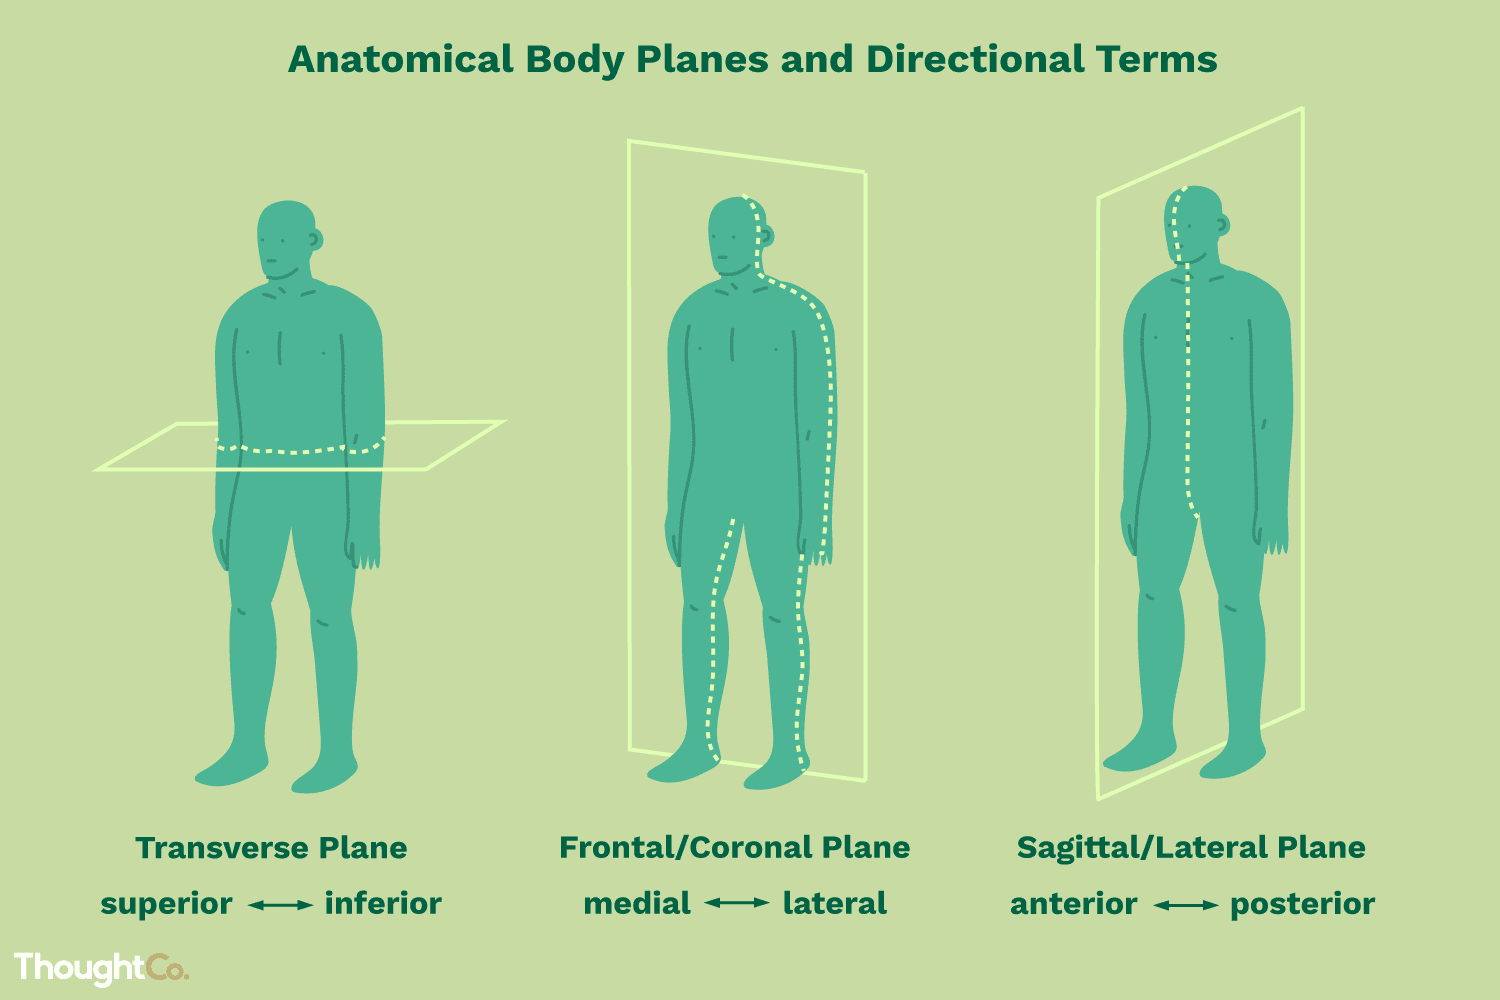 Anatomical Directional Terms And Body Planes